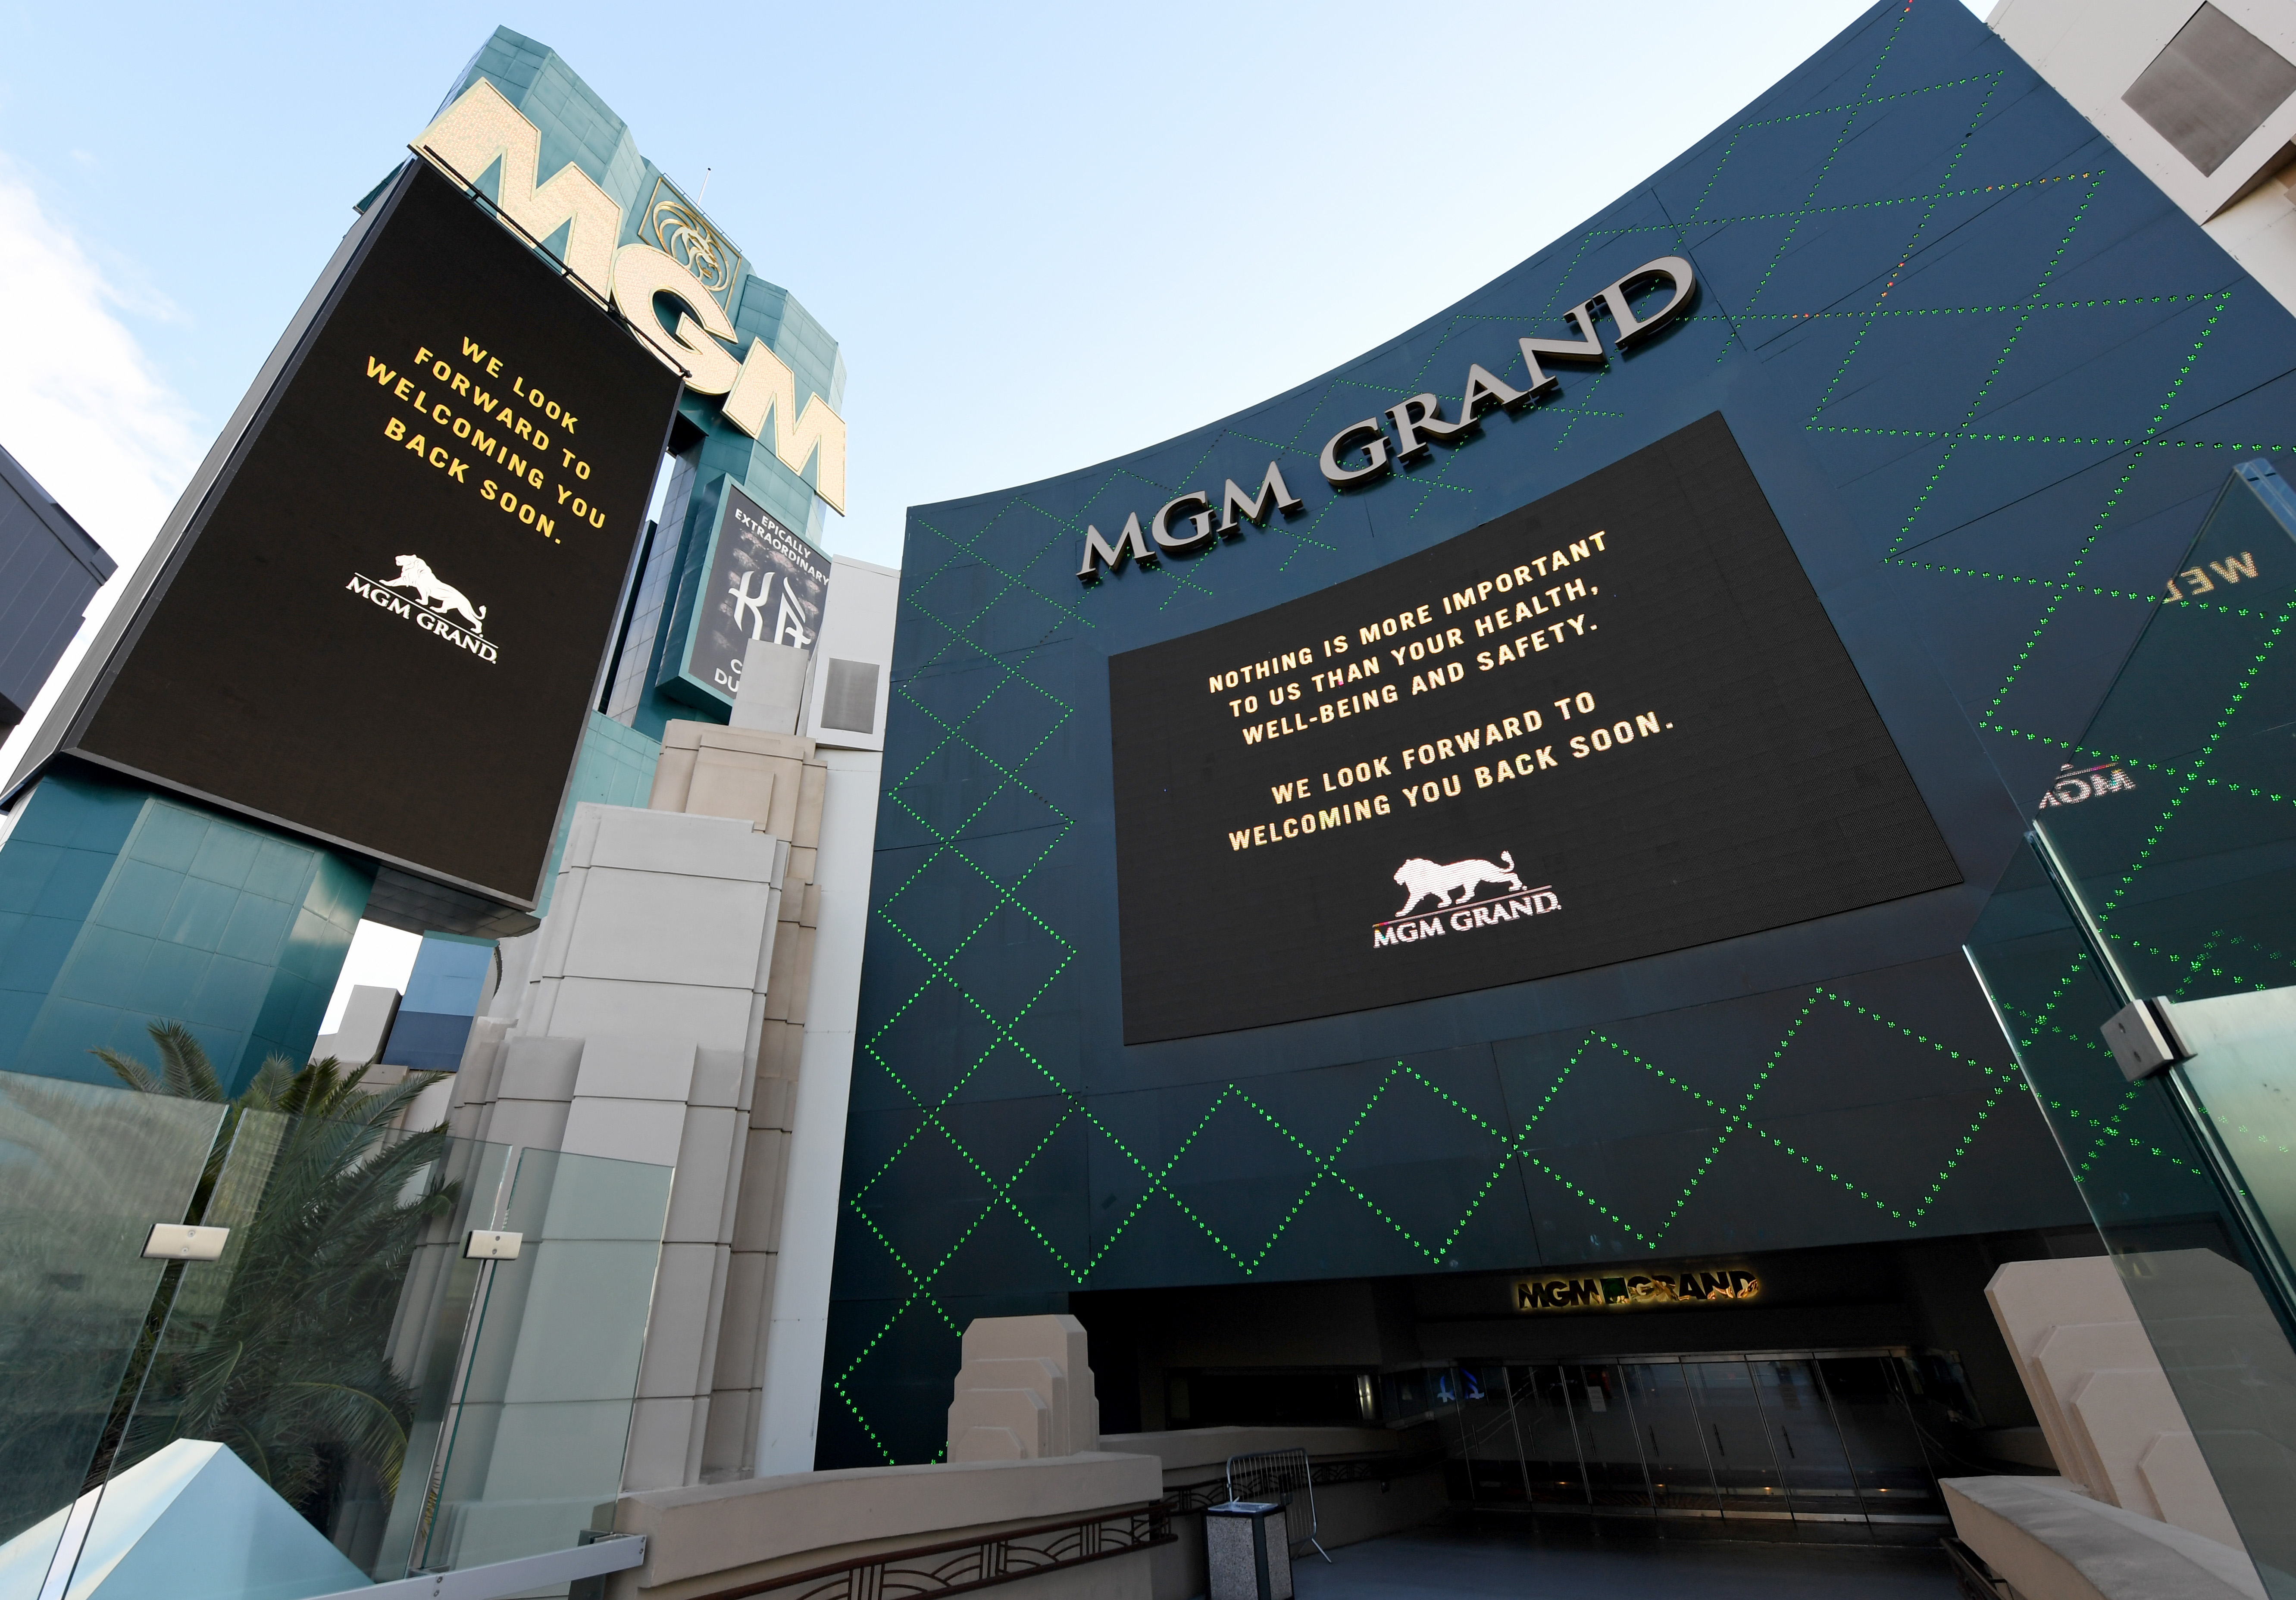 LAS VEGAS, NEVADA - MARCH 17: The marquee and sign at an entrance at MGM Grand & Hotel & Casino display messages after the Las Vegas Strip resort was closed as the coronavirus continues to spread across the United States on March 17, 2020 in Las Vegas, Nevada. MGM Resorts International suspended operations at all of its Las Vegas properties until further notice to combat the spread of the virus. The World Health Organization declared the coronavirus (COVID-19) a global pandemic on March 11th. (Photo by Ethan Miller/Getty Images)